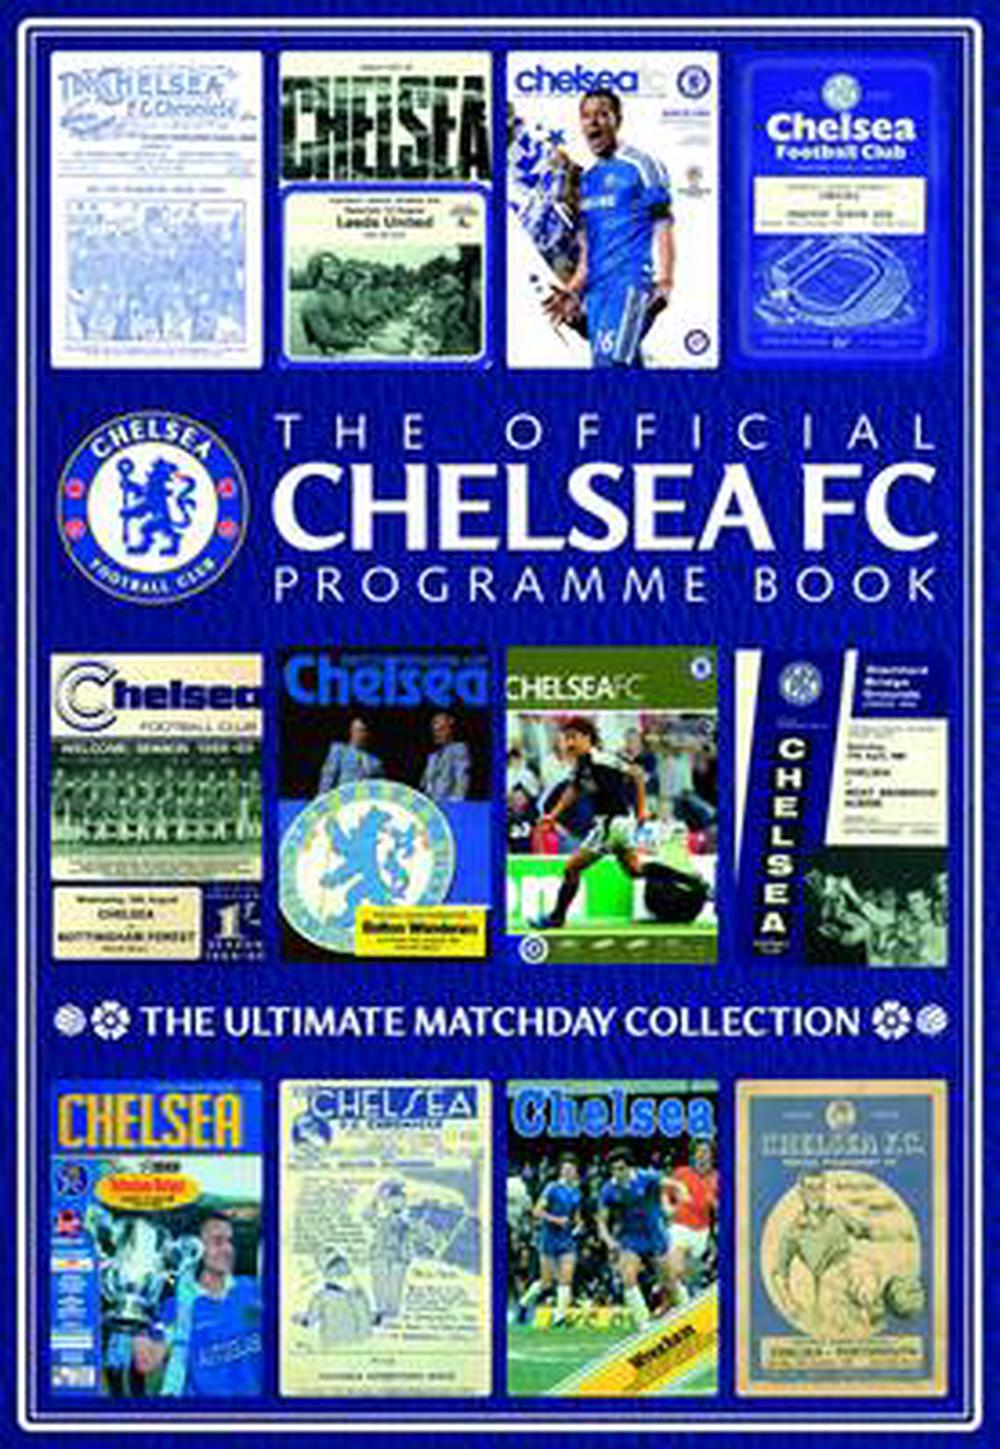 Official-Chelsea-FC-Programme-Book-by-Chelsea-F-C-Hardcover-Book-Free-Shipping